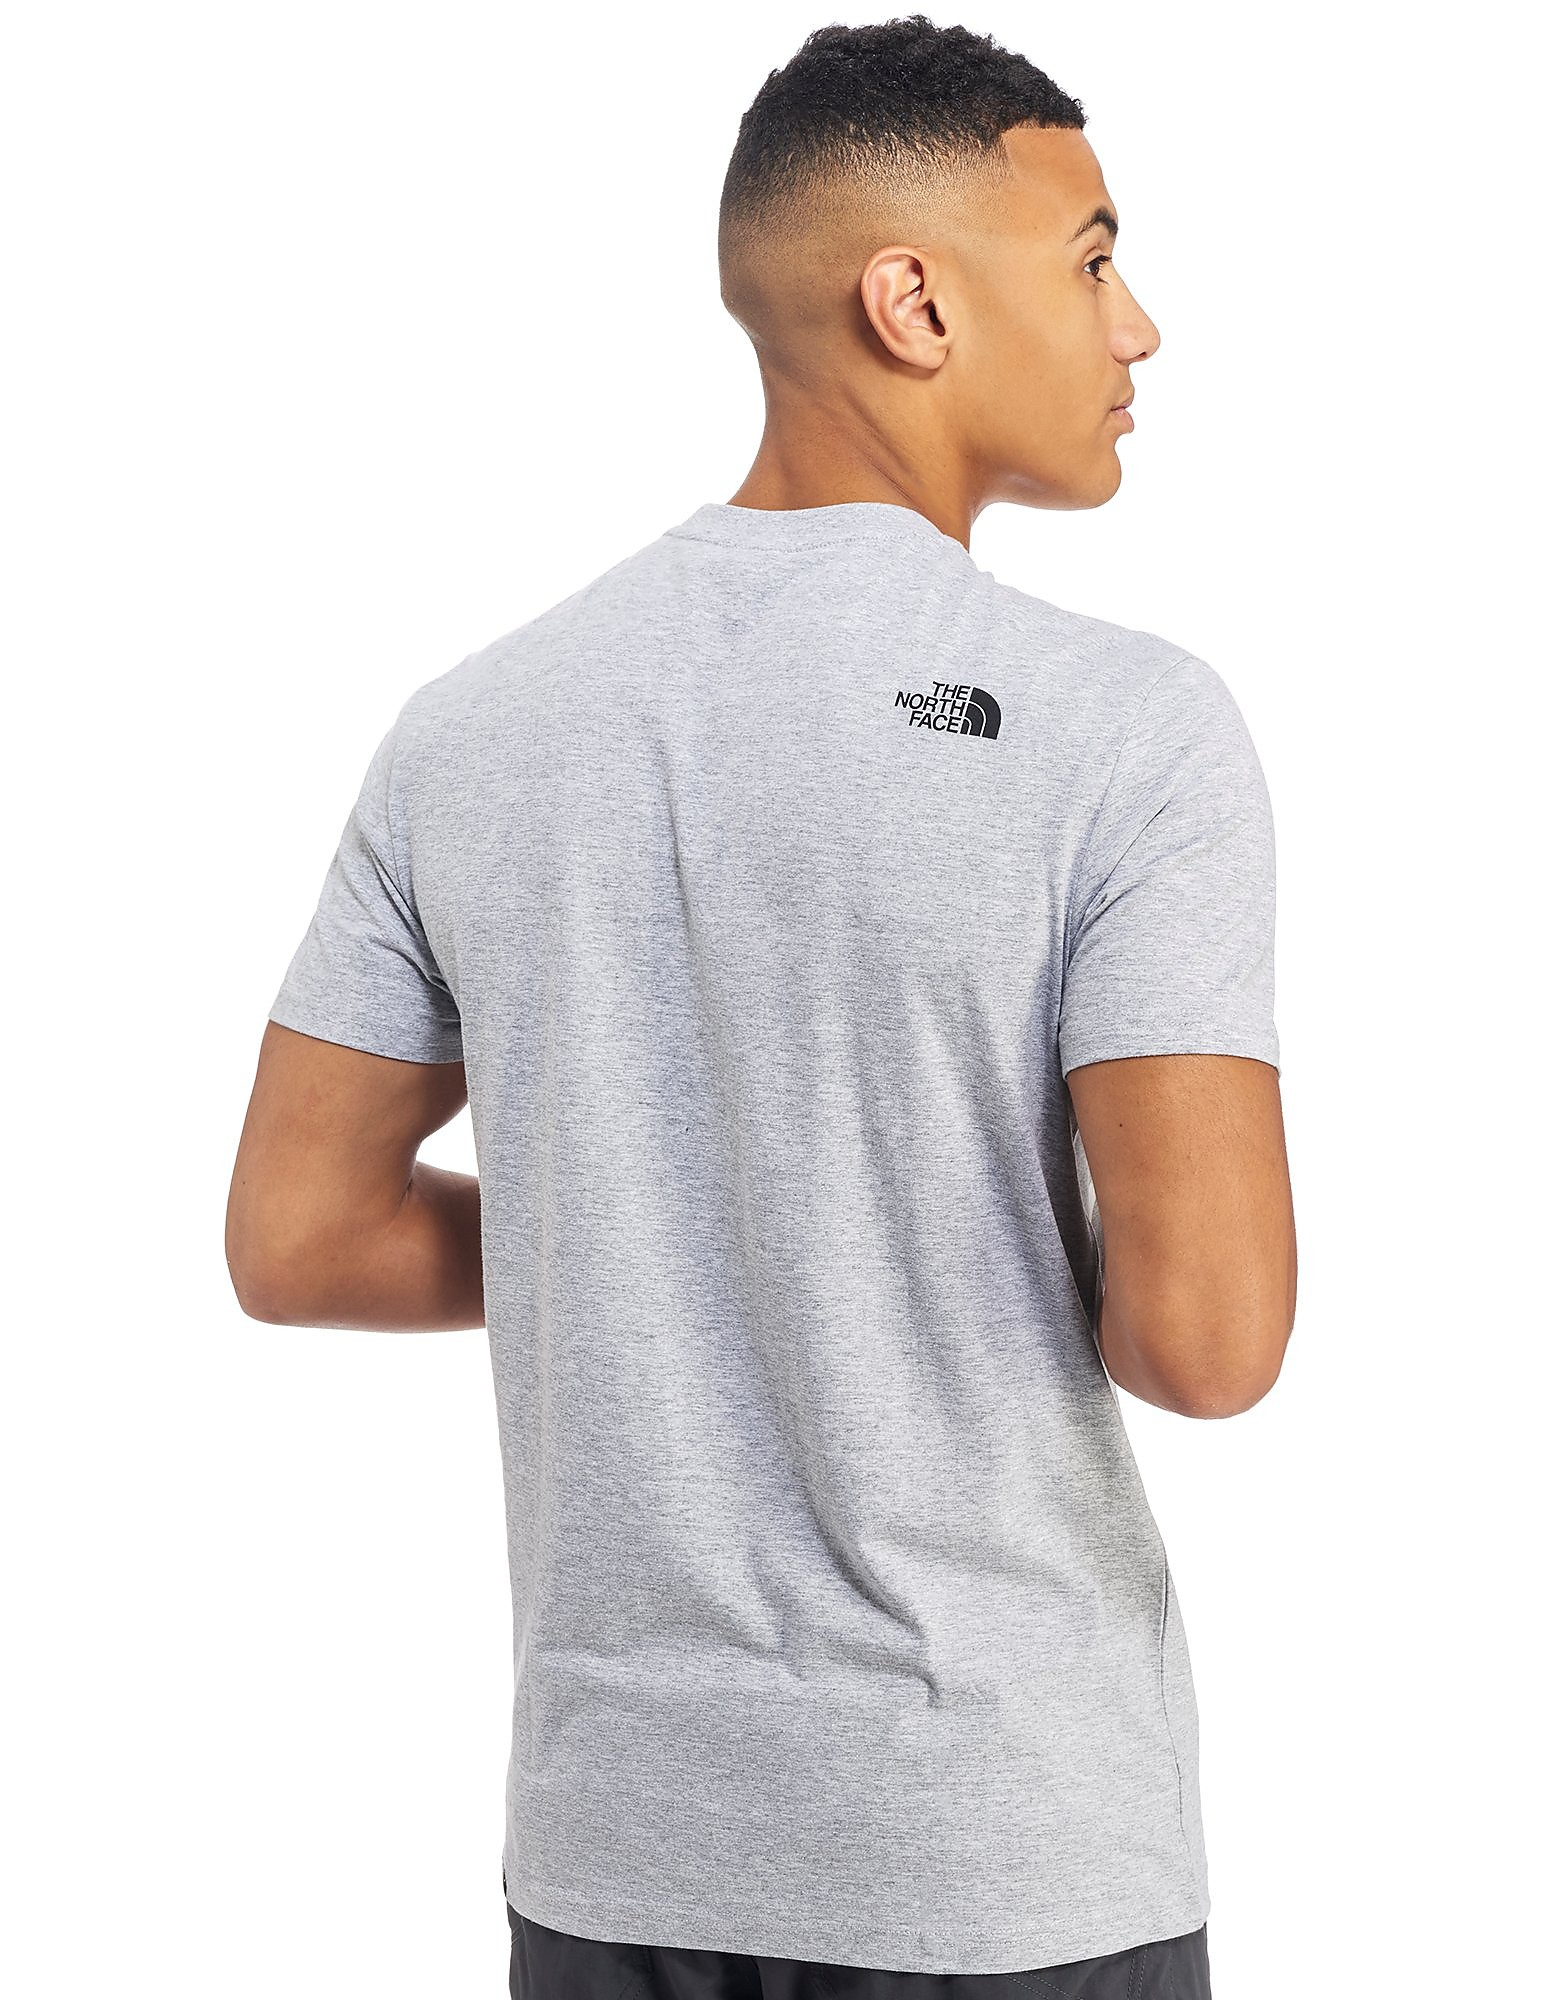 The North Face Momba T-Shirt